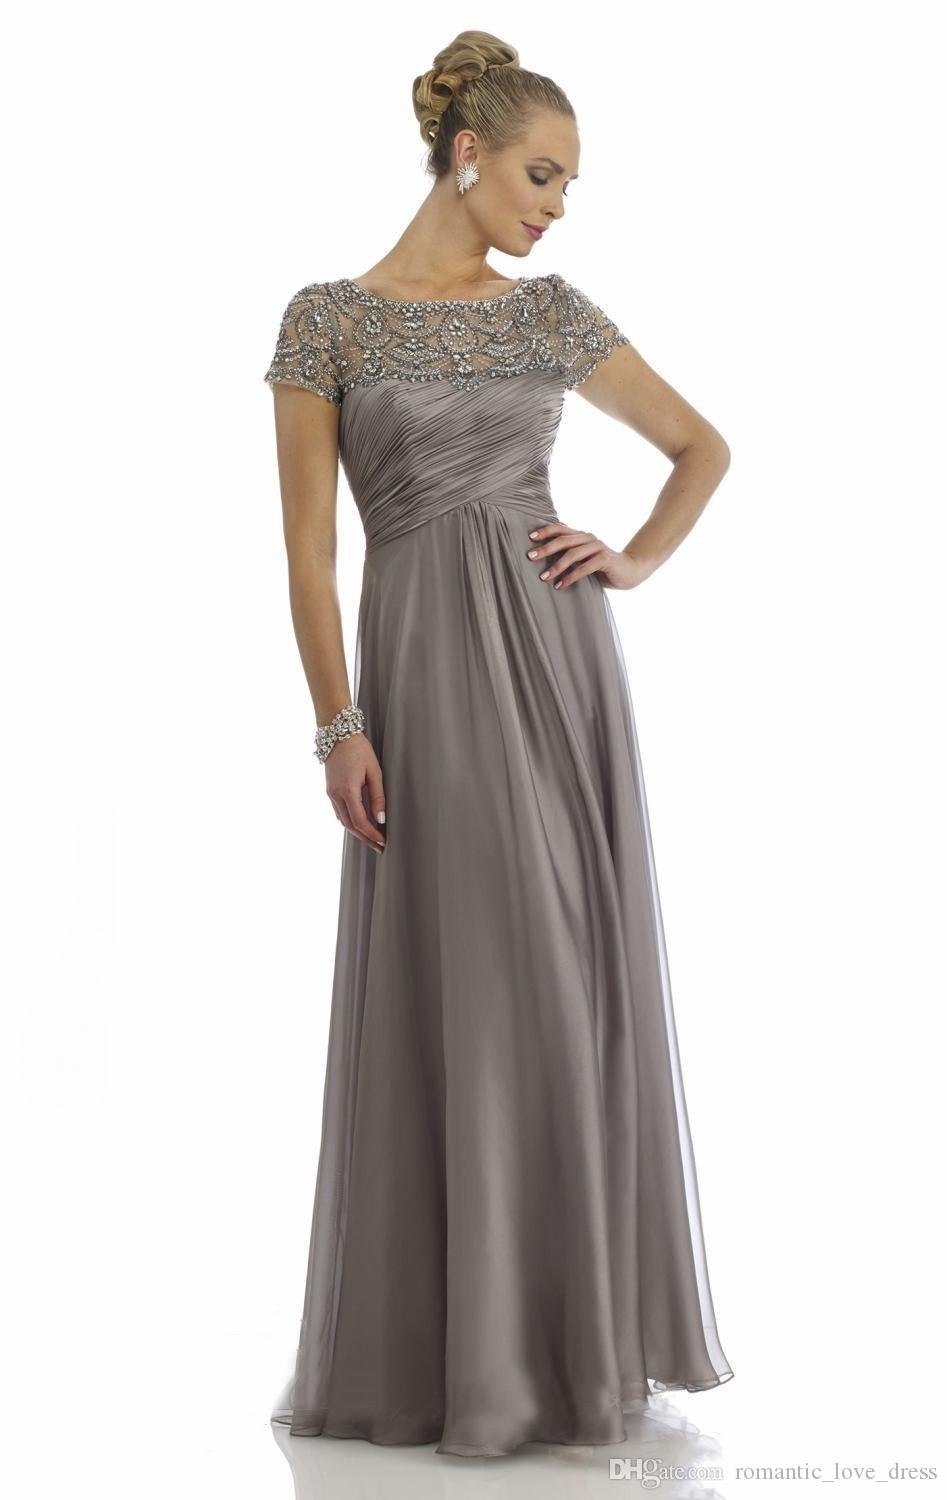 Gray Chiffon Mother of the Bride Dresses 2018 Luxury Rhinestone Crystals Short Sleeve Empire A-Line Sheer Mother of Bride Groom Dresses M03